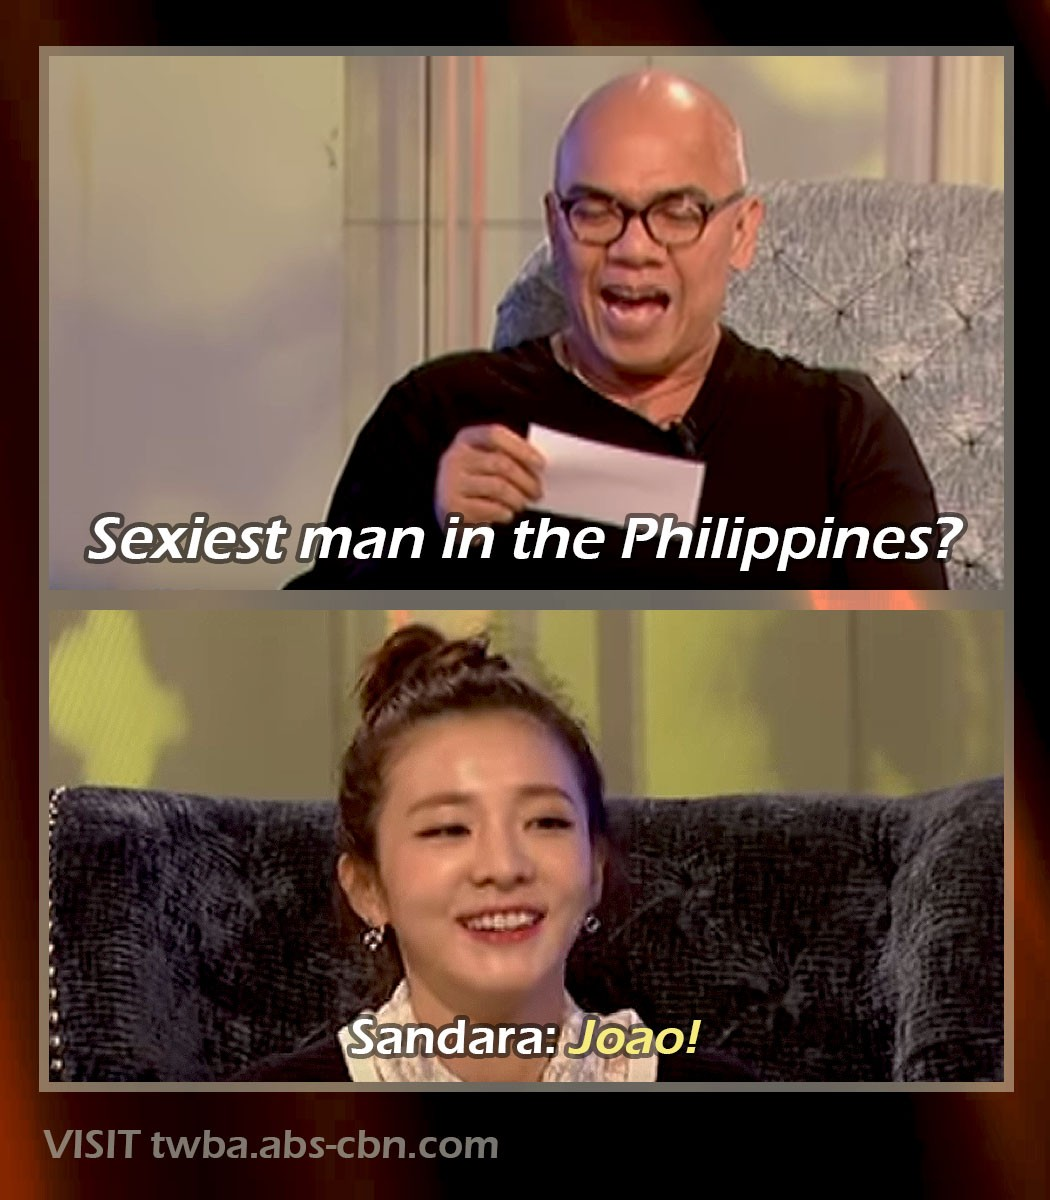 These 10 female celebs reveal the SEXIEST MEN in the Philippines for them on TWBA!